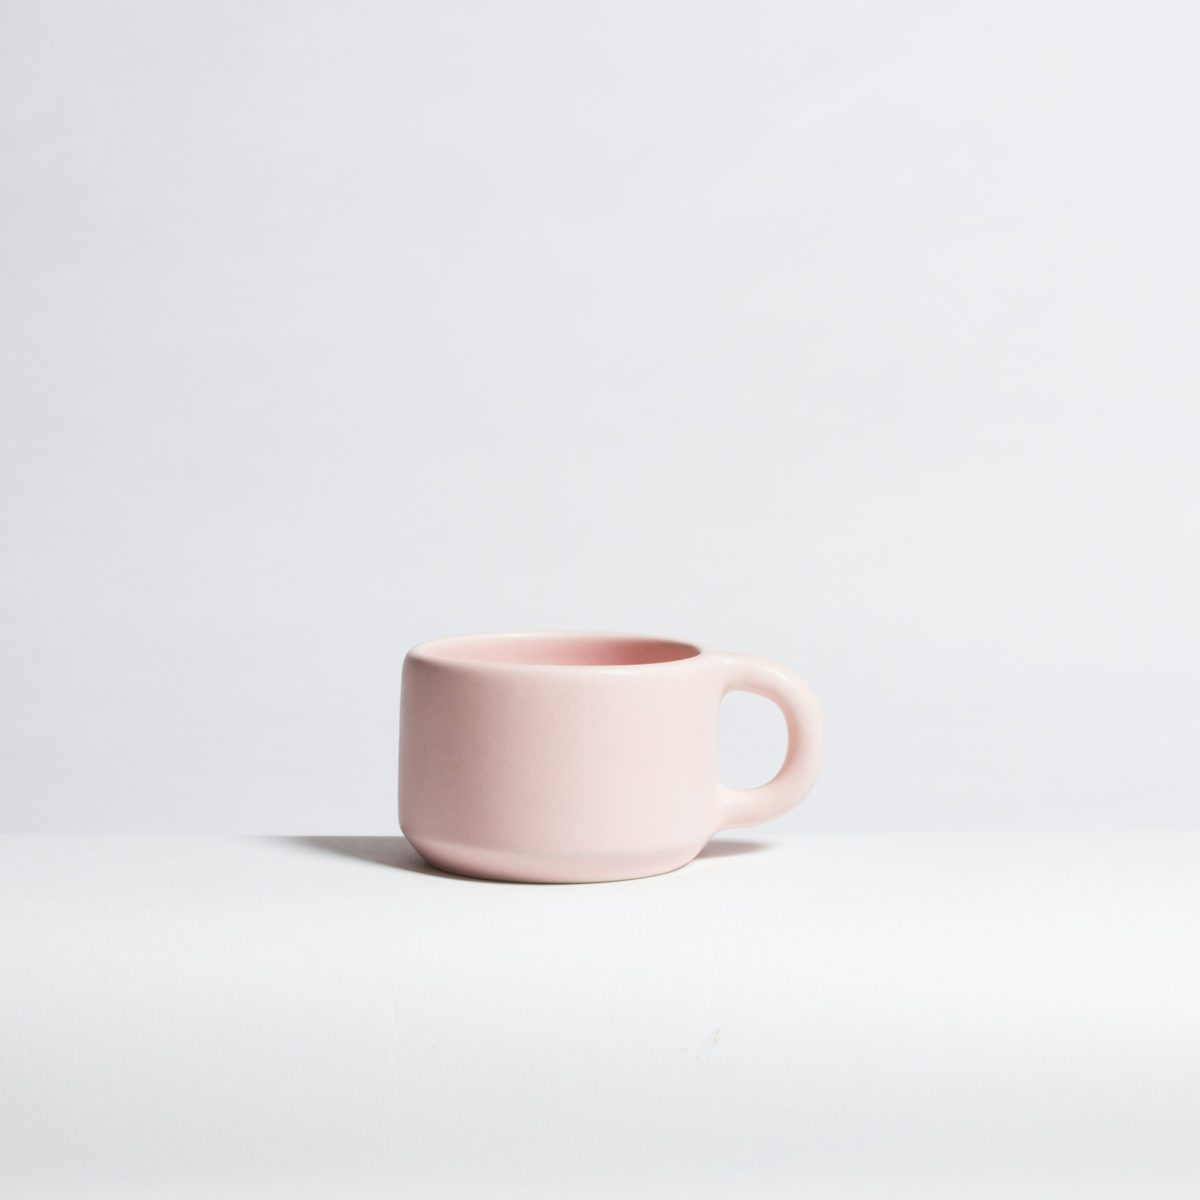 Blush cappuccino cup mug handmade felt and fat in the pursuit